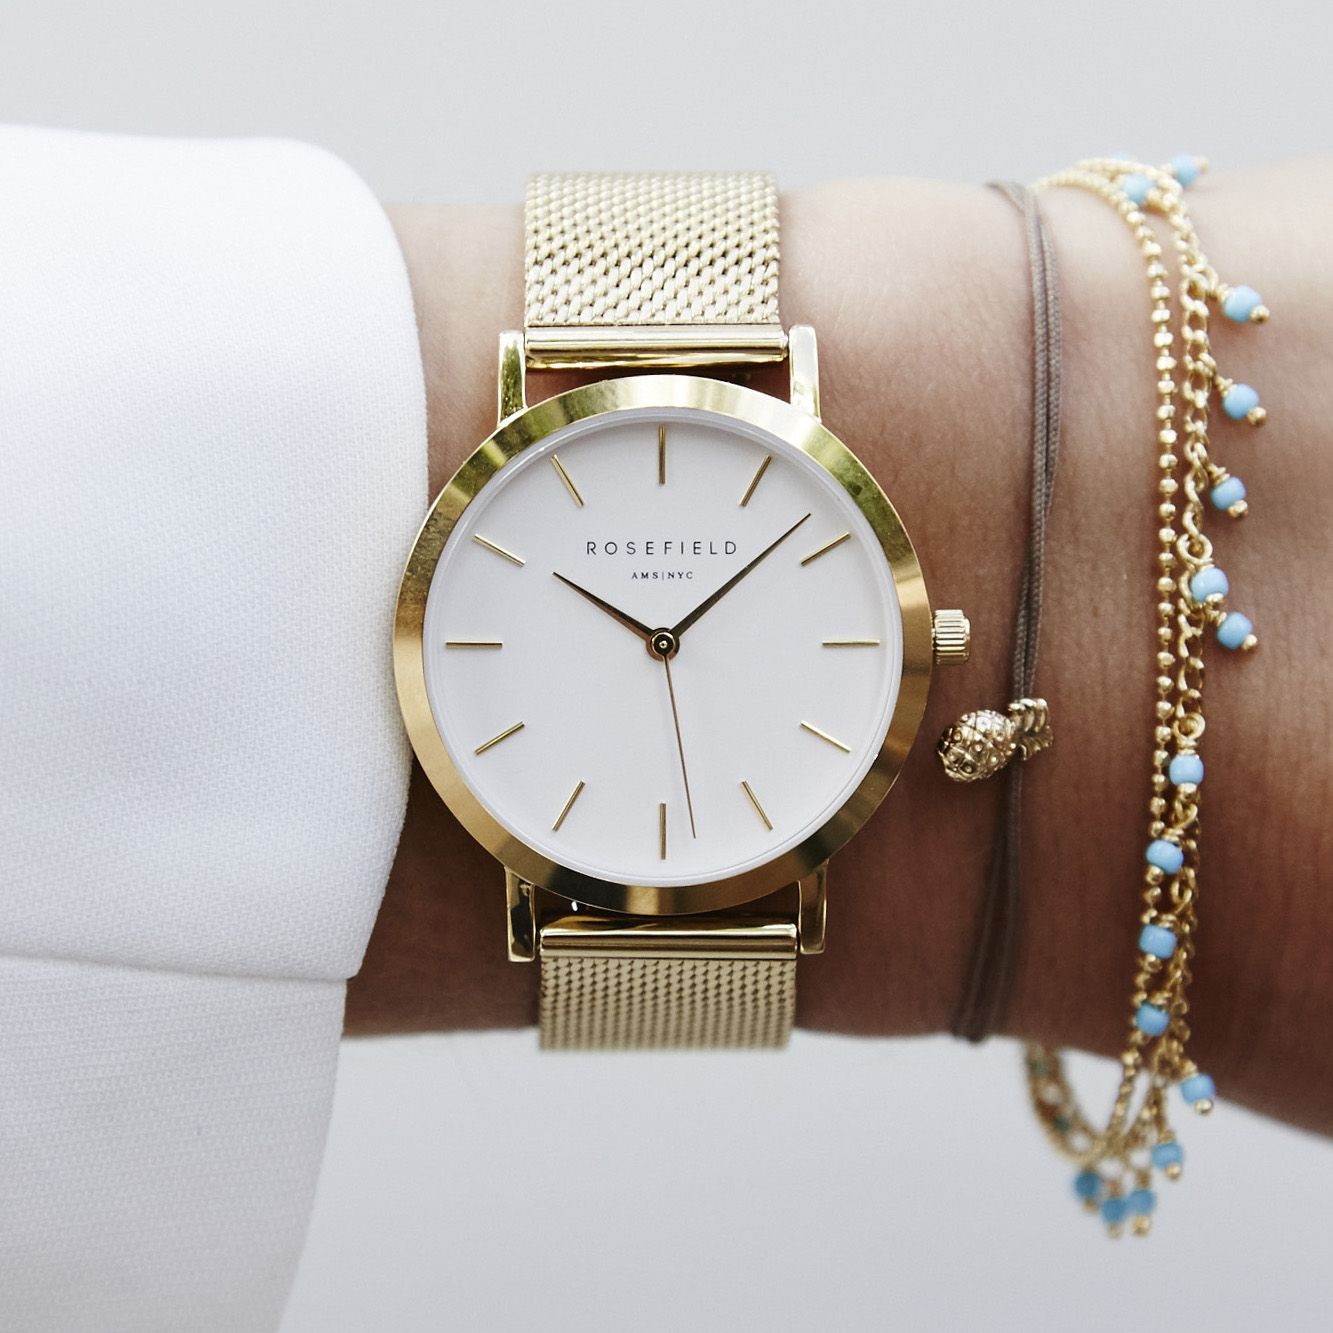 Change your look   get your hands on exquisite watches d020103d4f